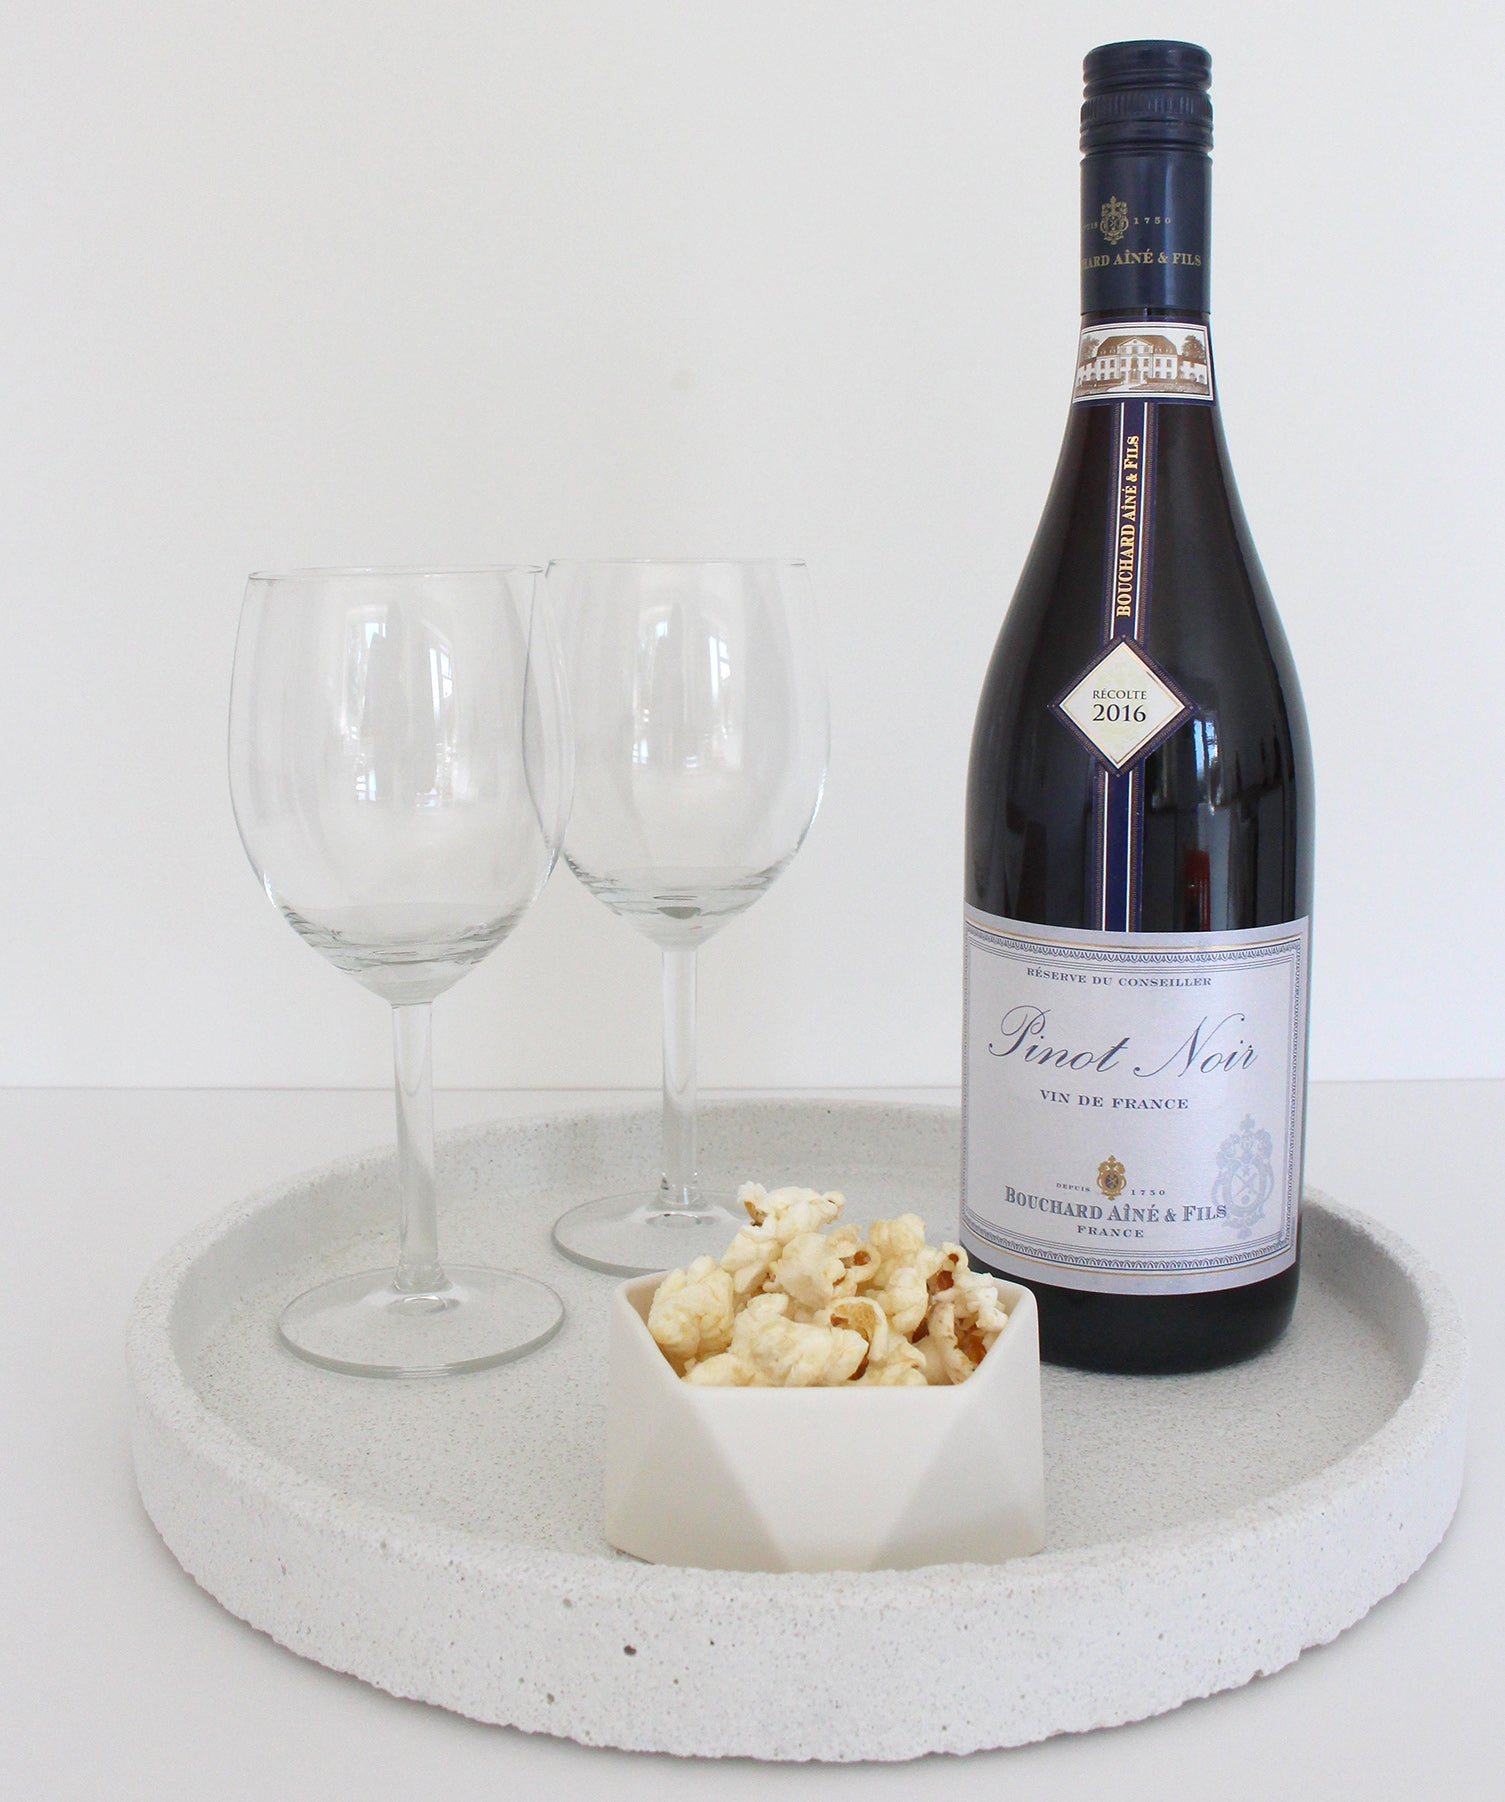 Bottle of wine, 2 wine glasses and a ceramic pot of popcorn on a white concrete tray